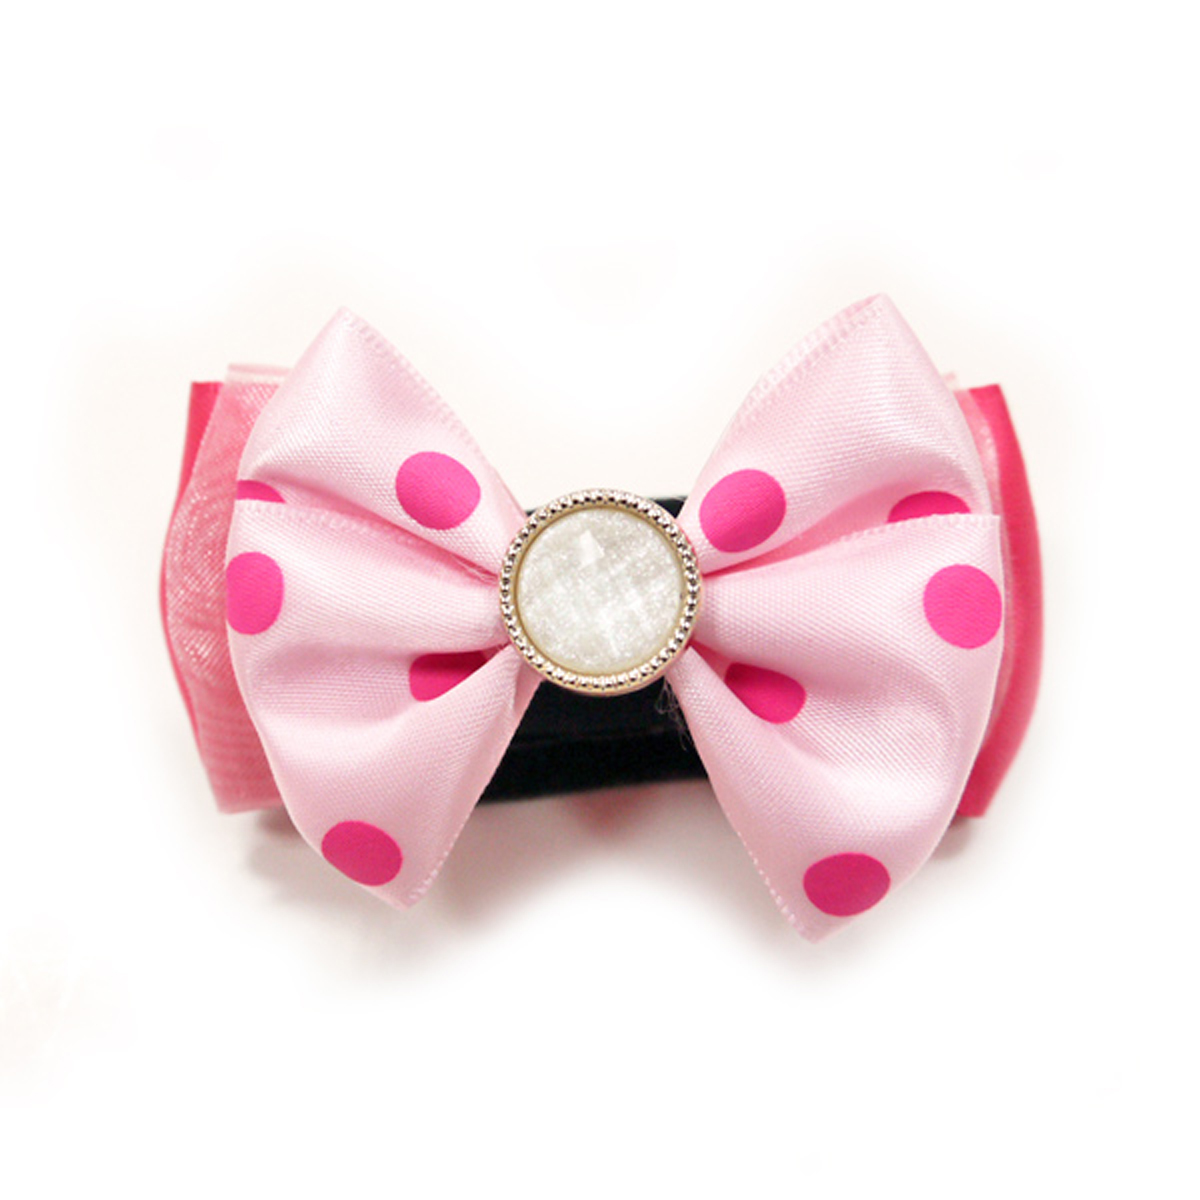 EasyBOW Polka Dot Delight Dog Collar Attachment by Dogo - Pink